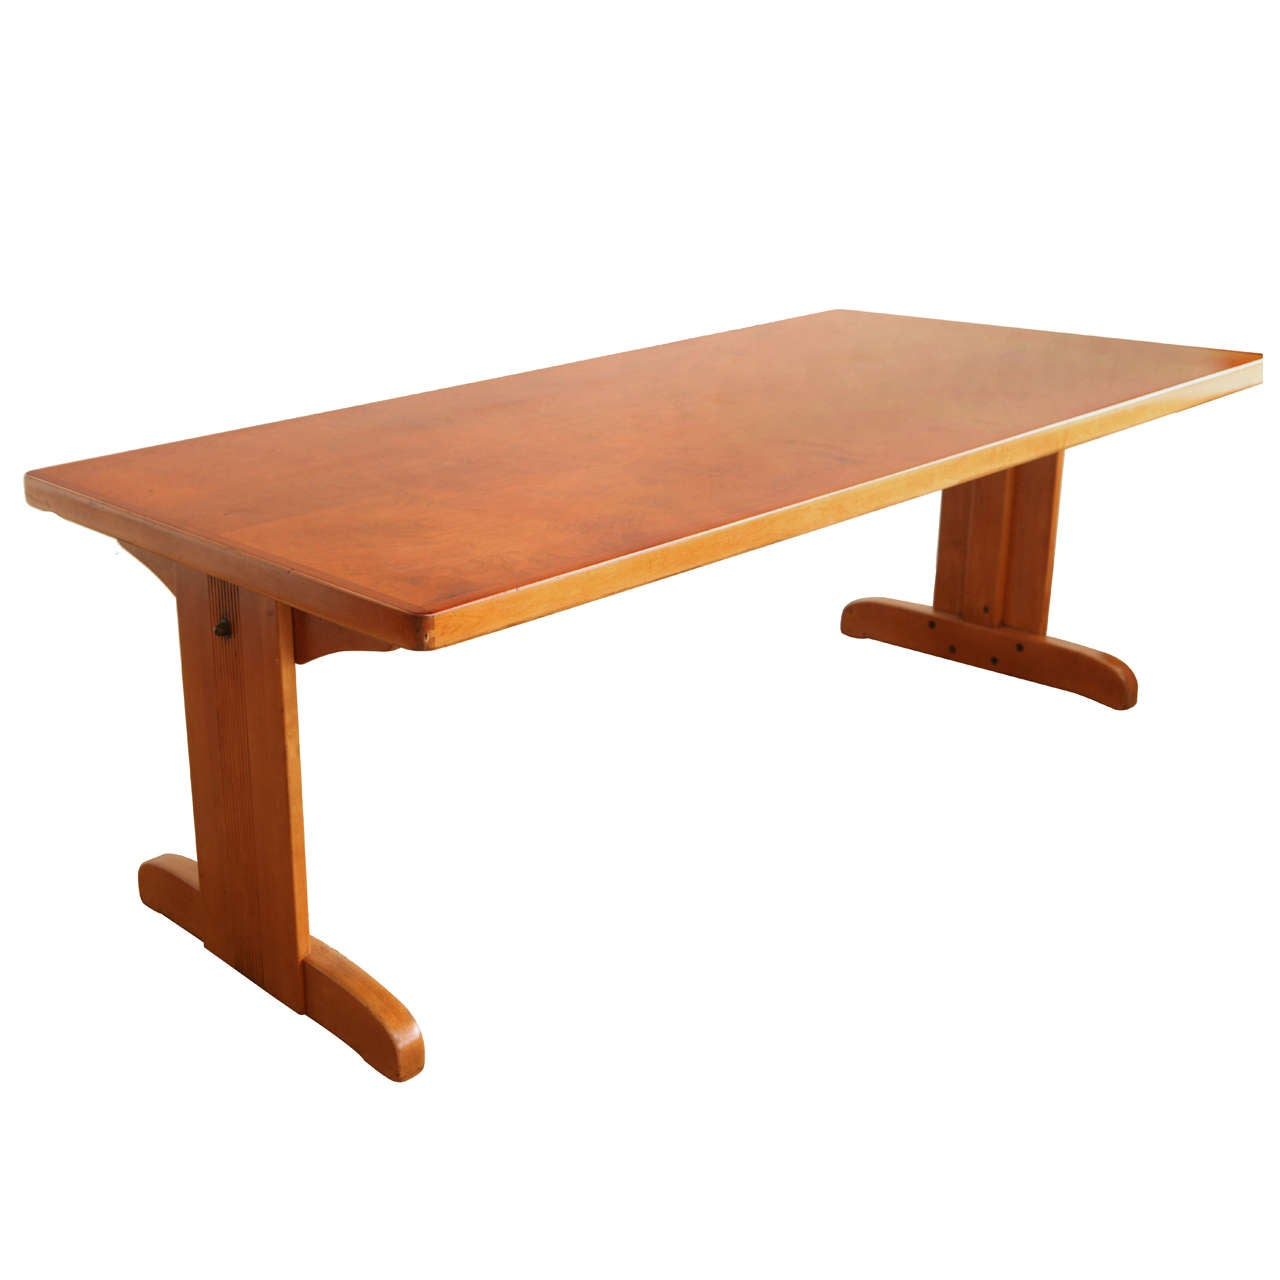 Vintage Children S Desk By American Seating Company At 1stdibs